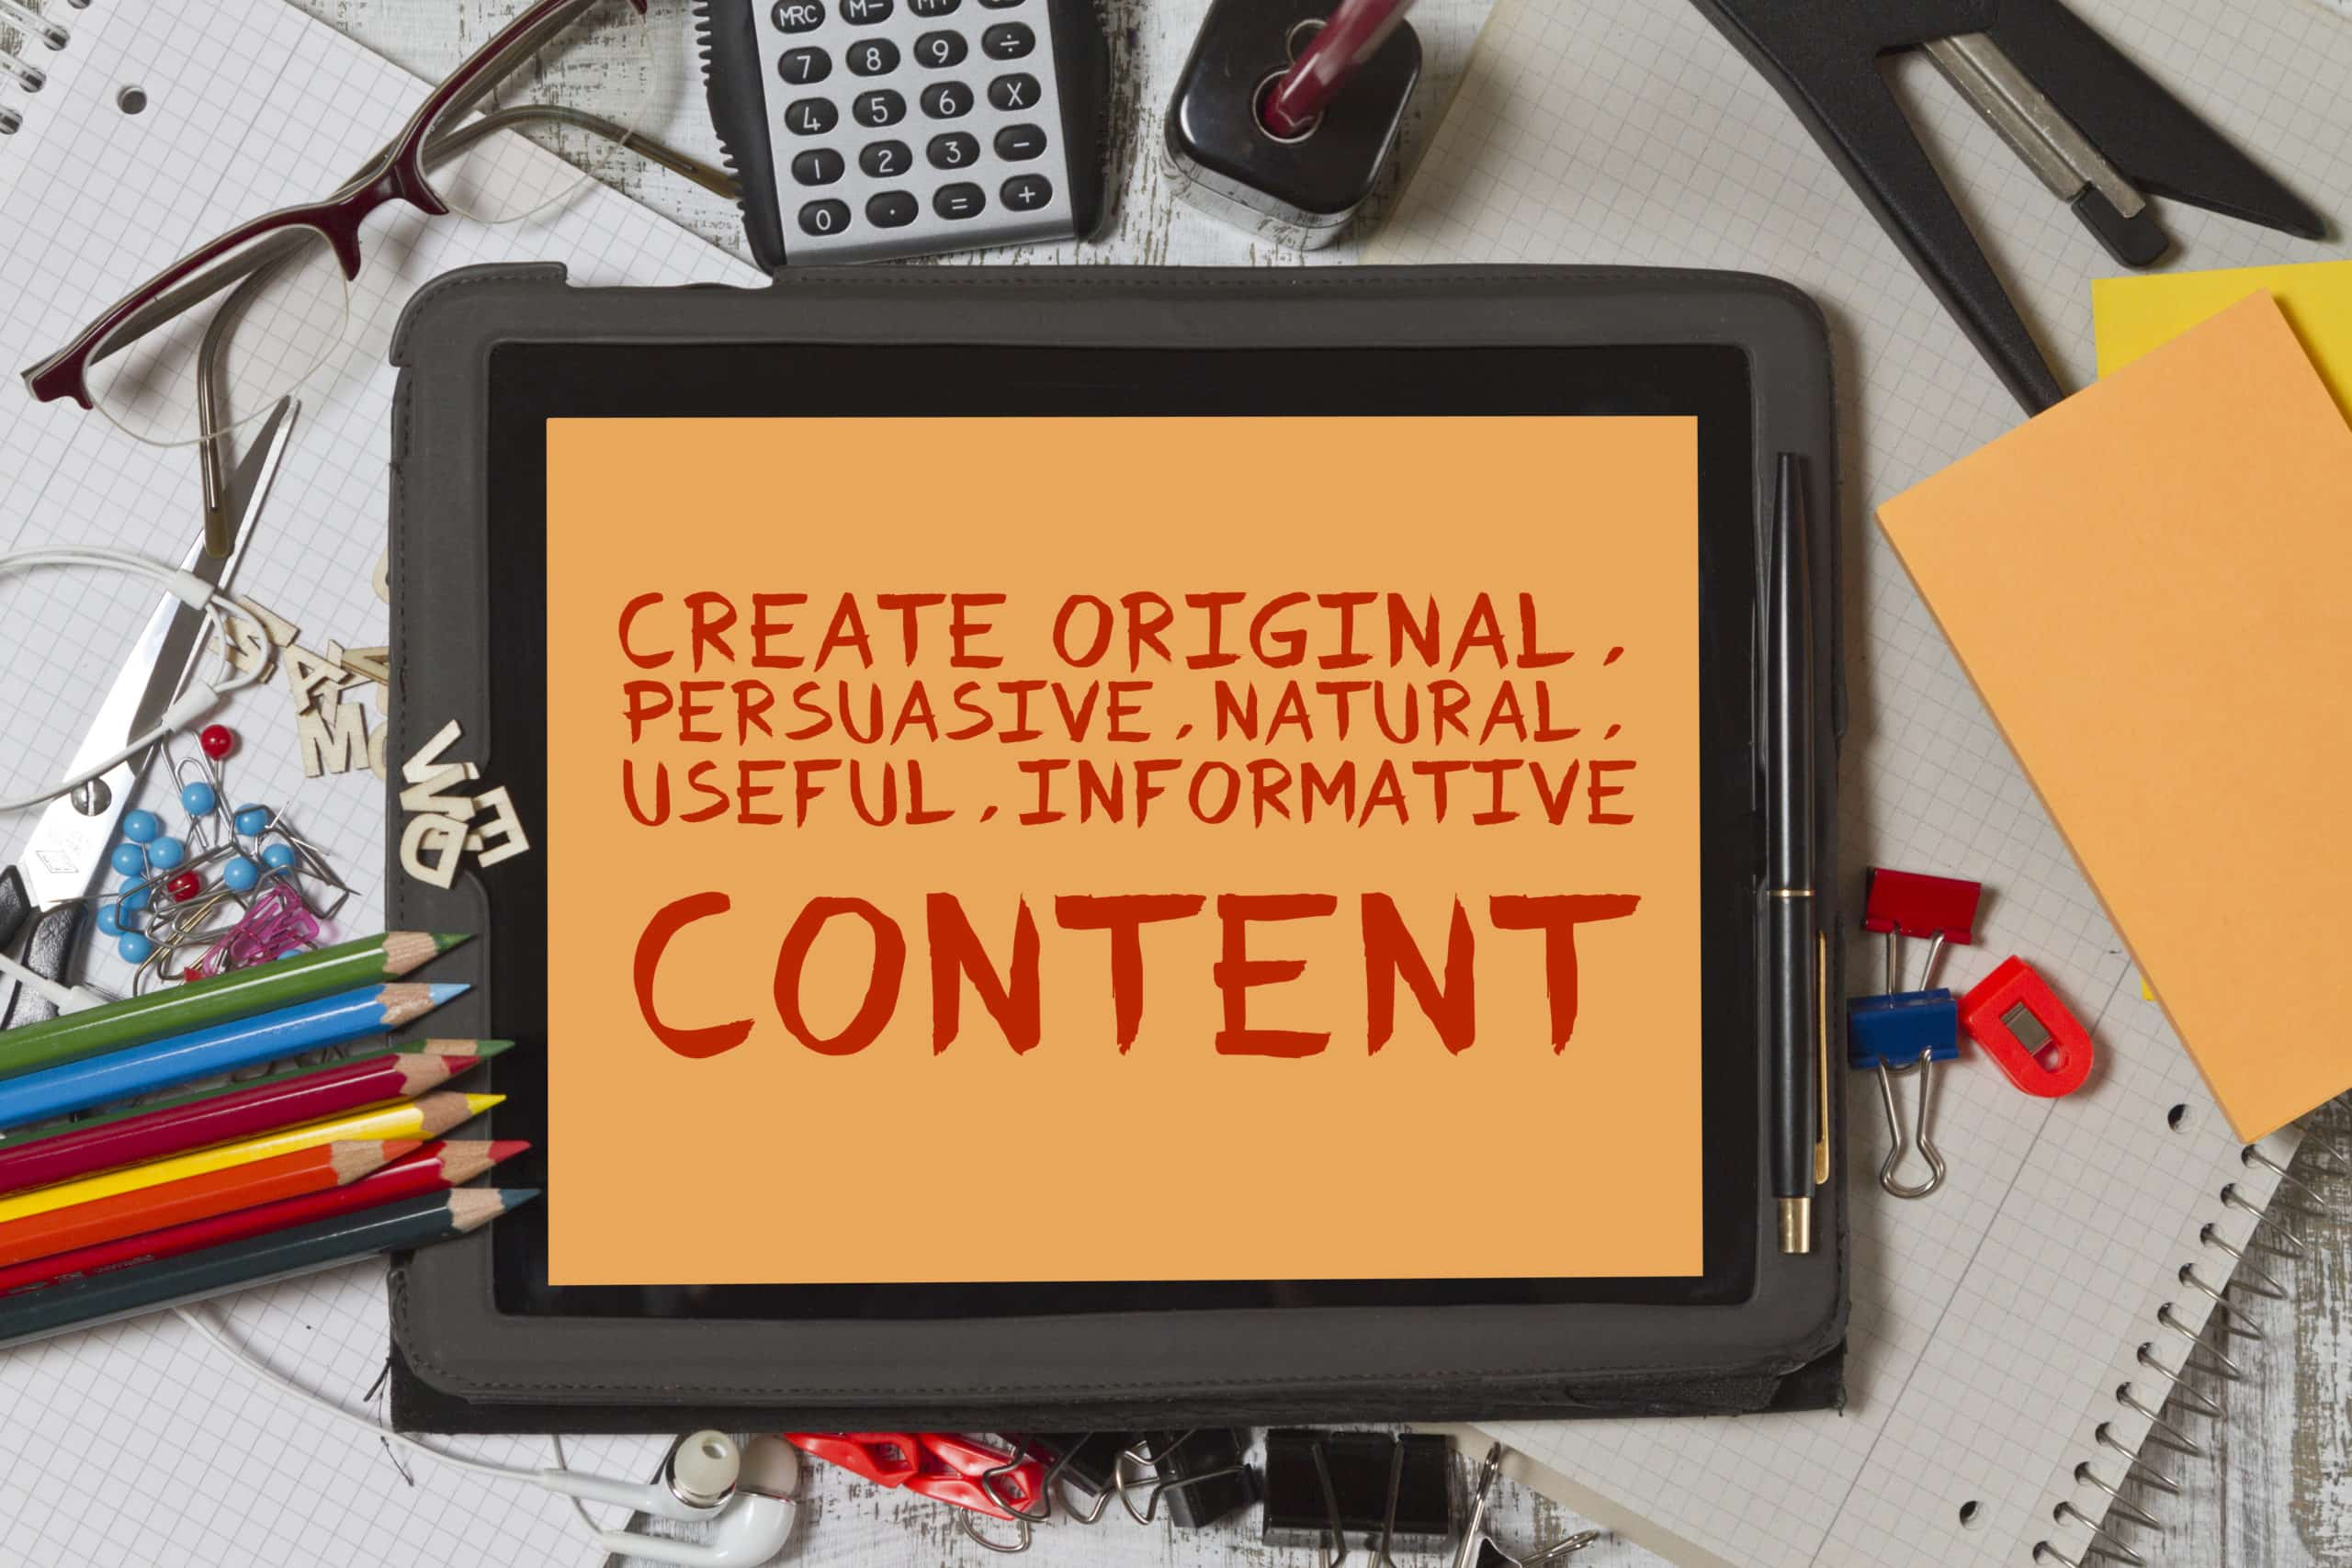 Is Content Marketing the Right Choice for My Business?